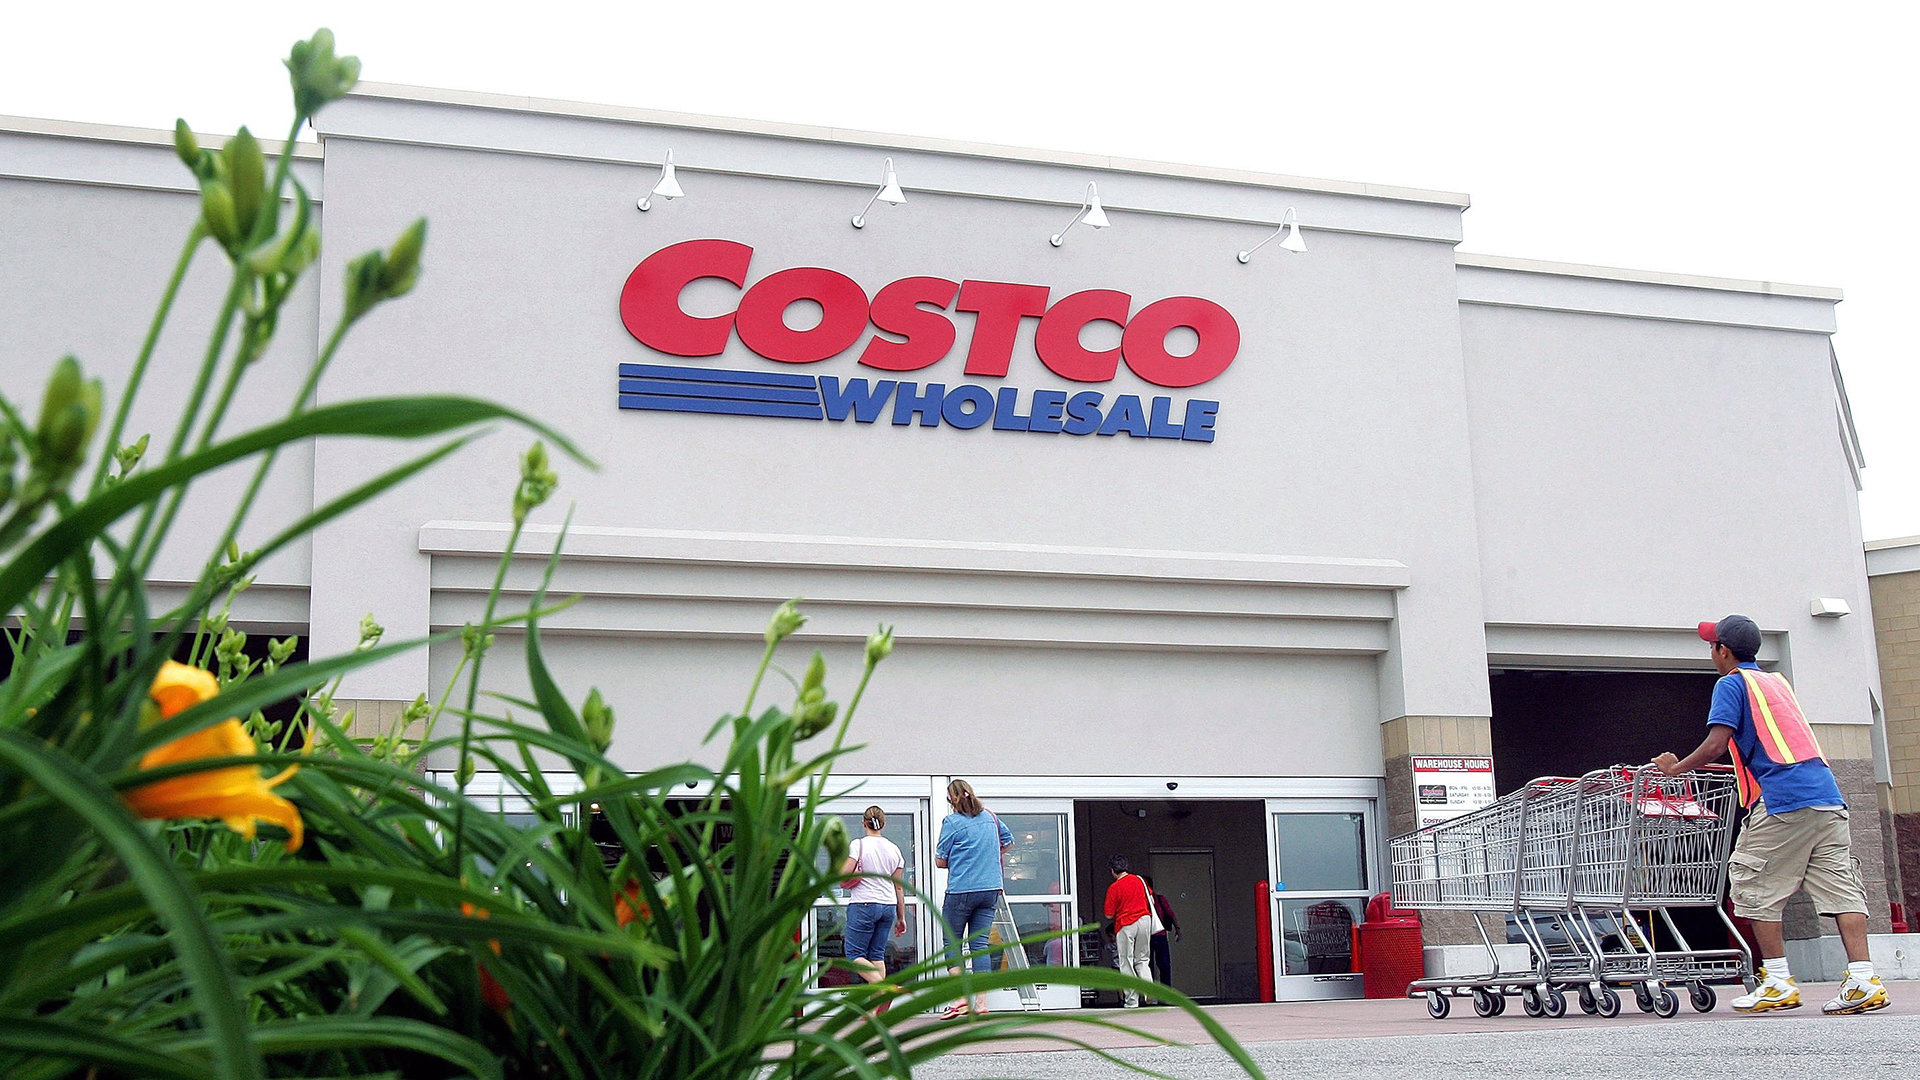 Costco wholesale club exterior-159532.jpg11950489